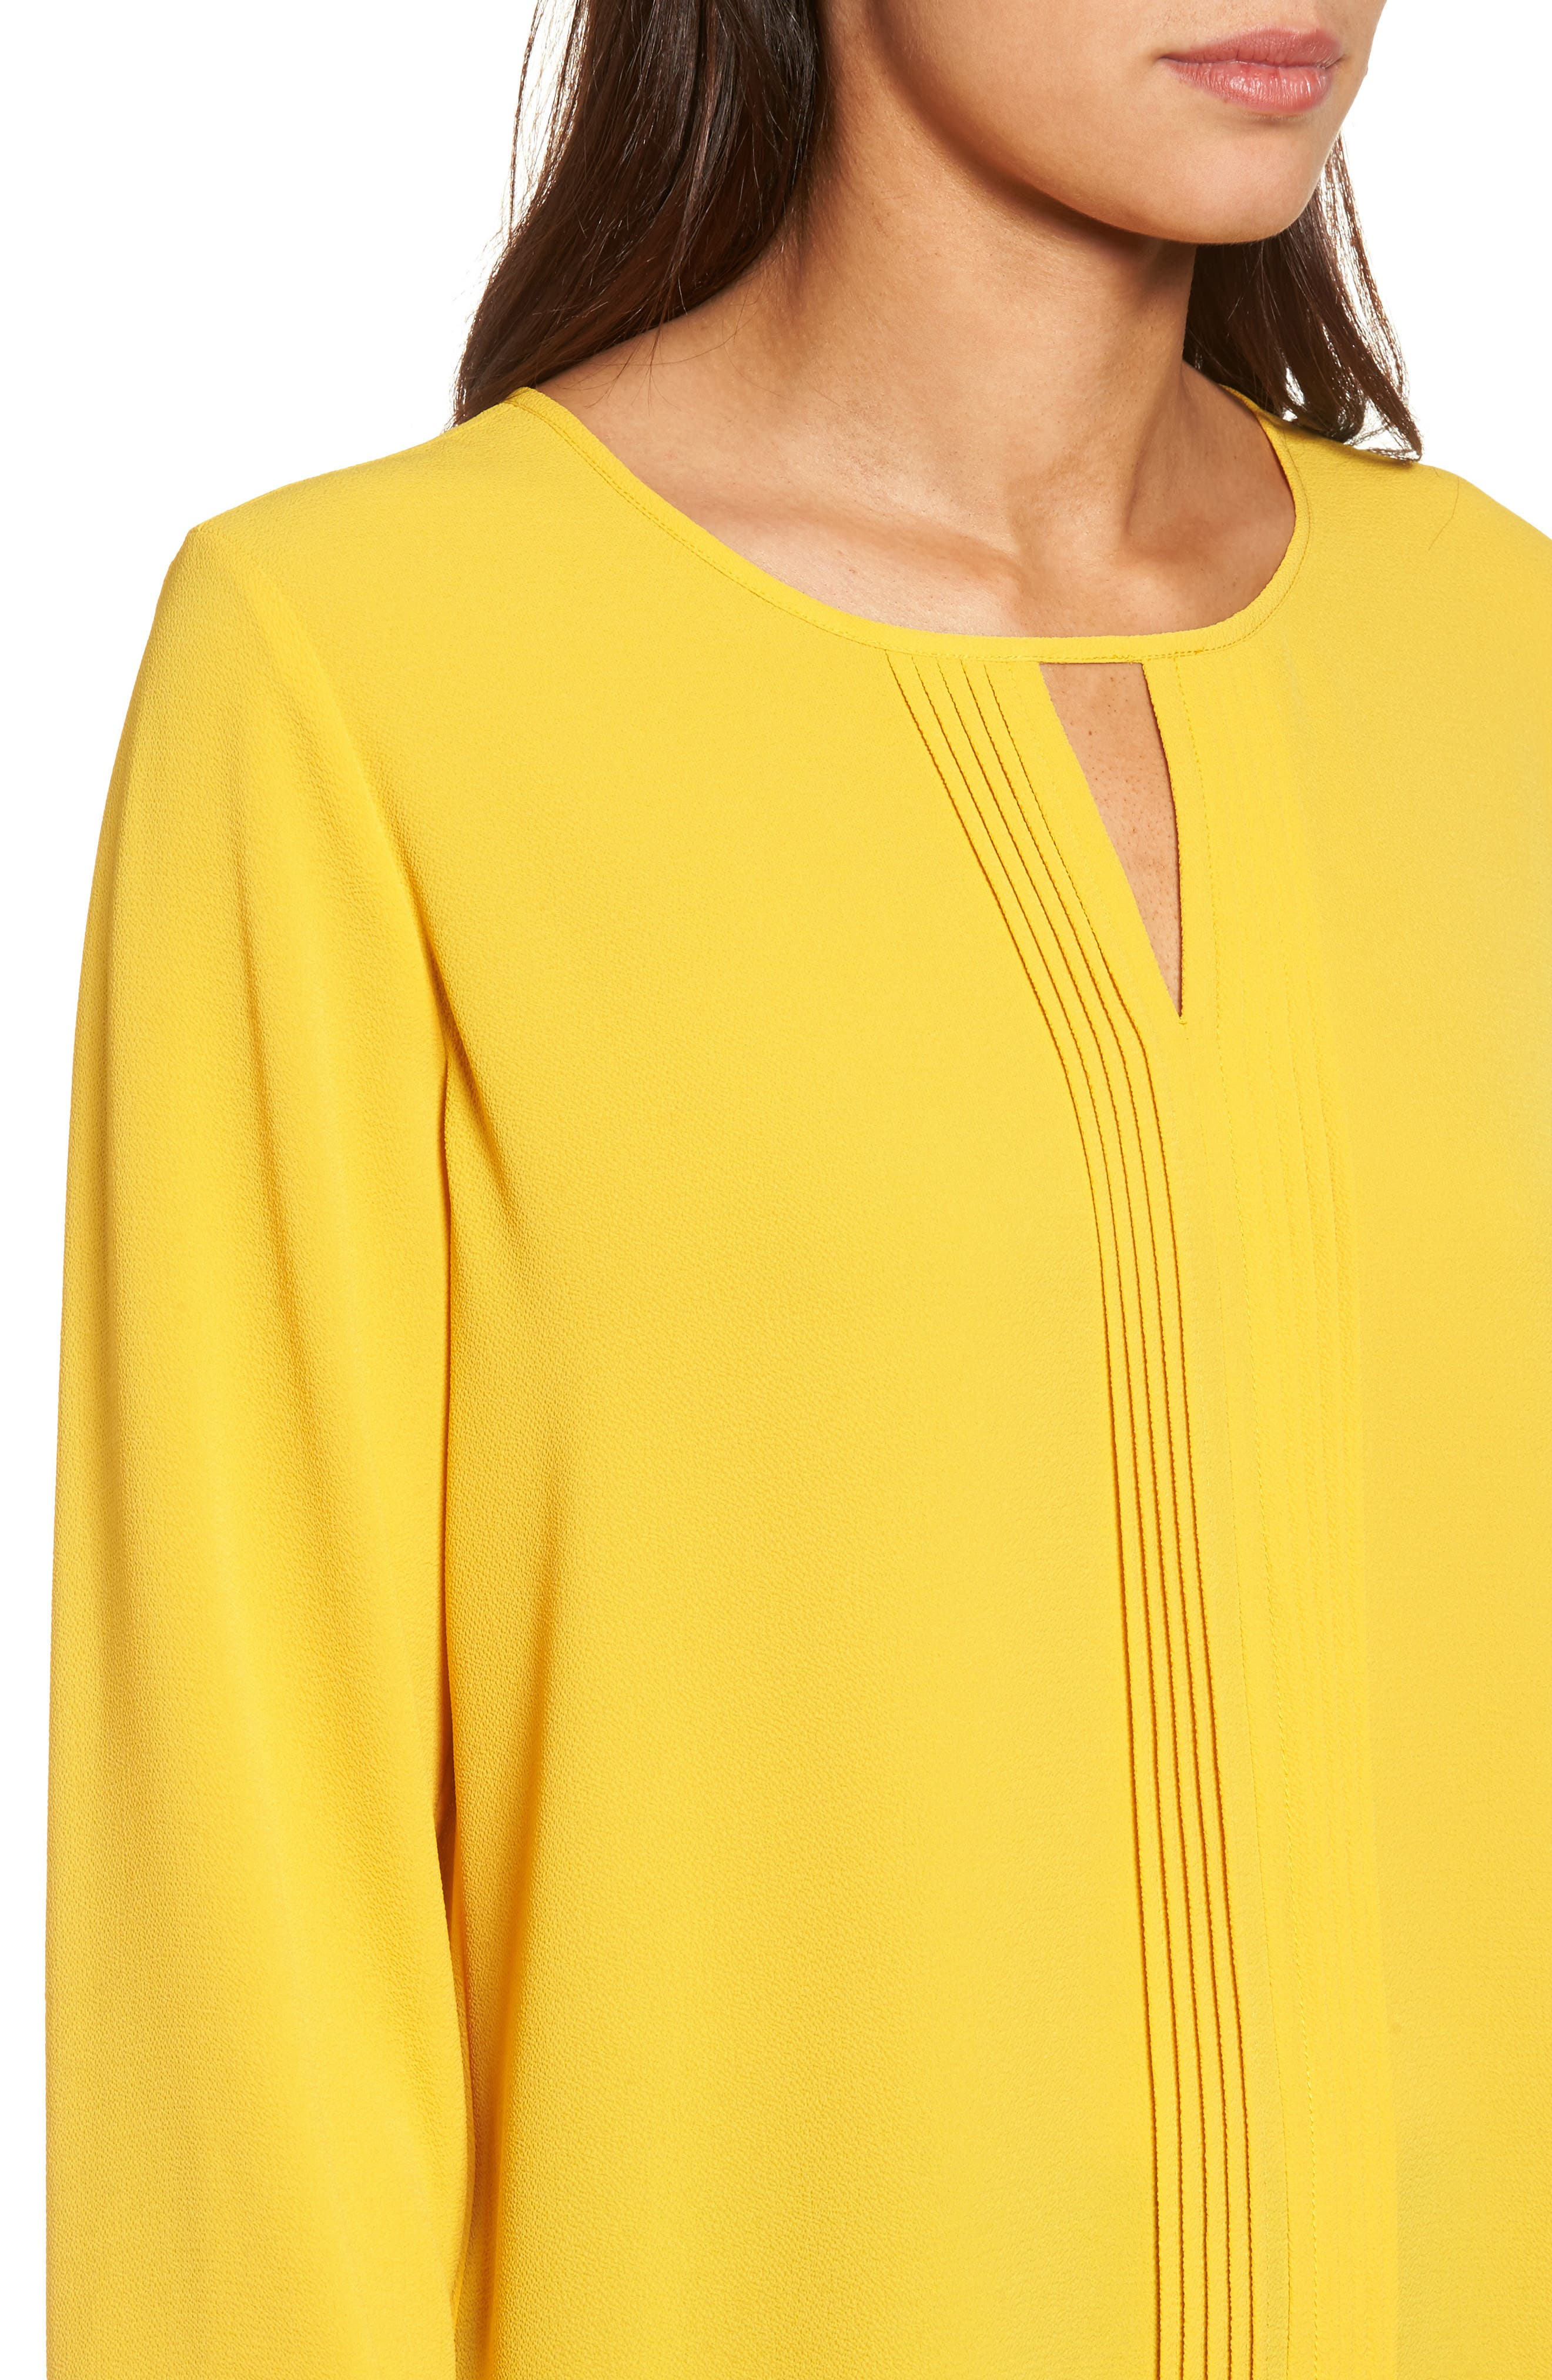 Pintuck Front Blouse,                             Alternate thumbnail 4, color,                             730